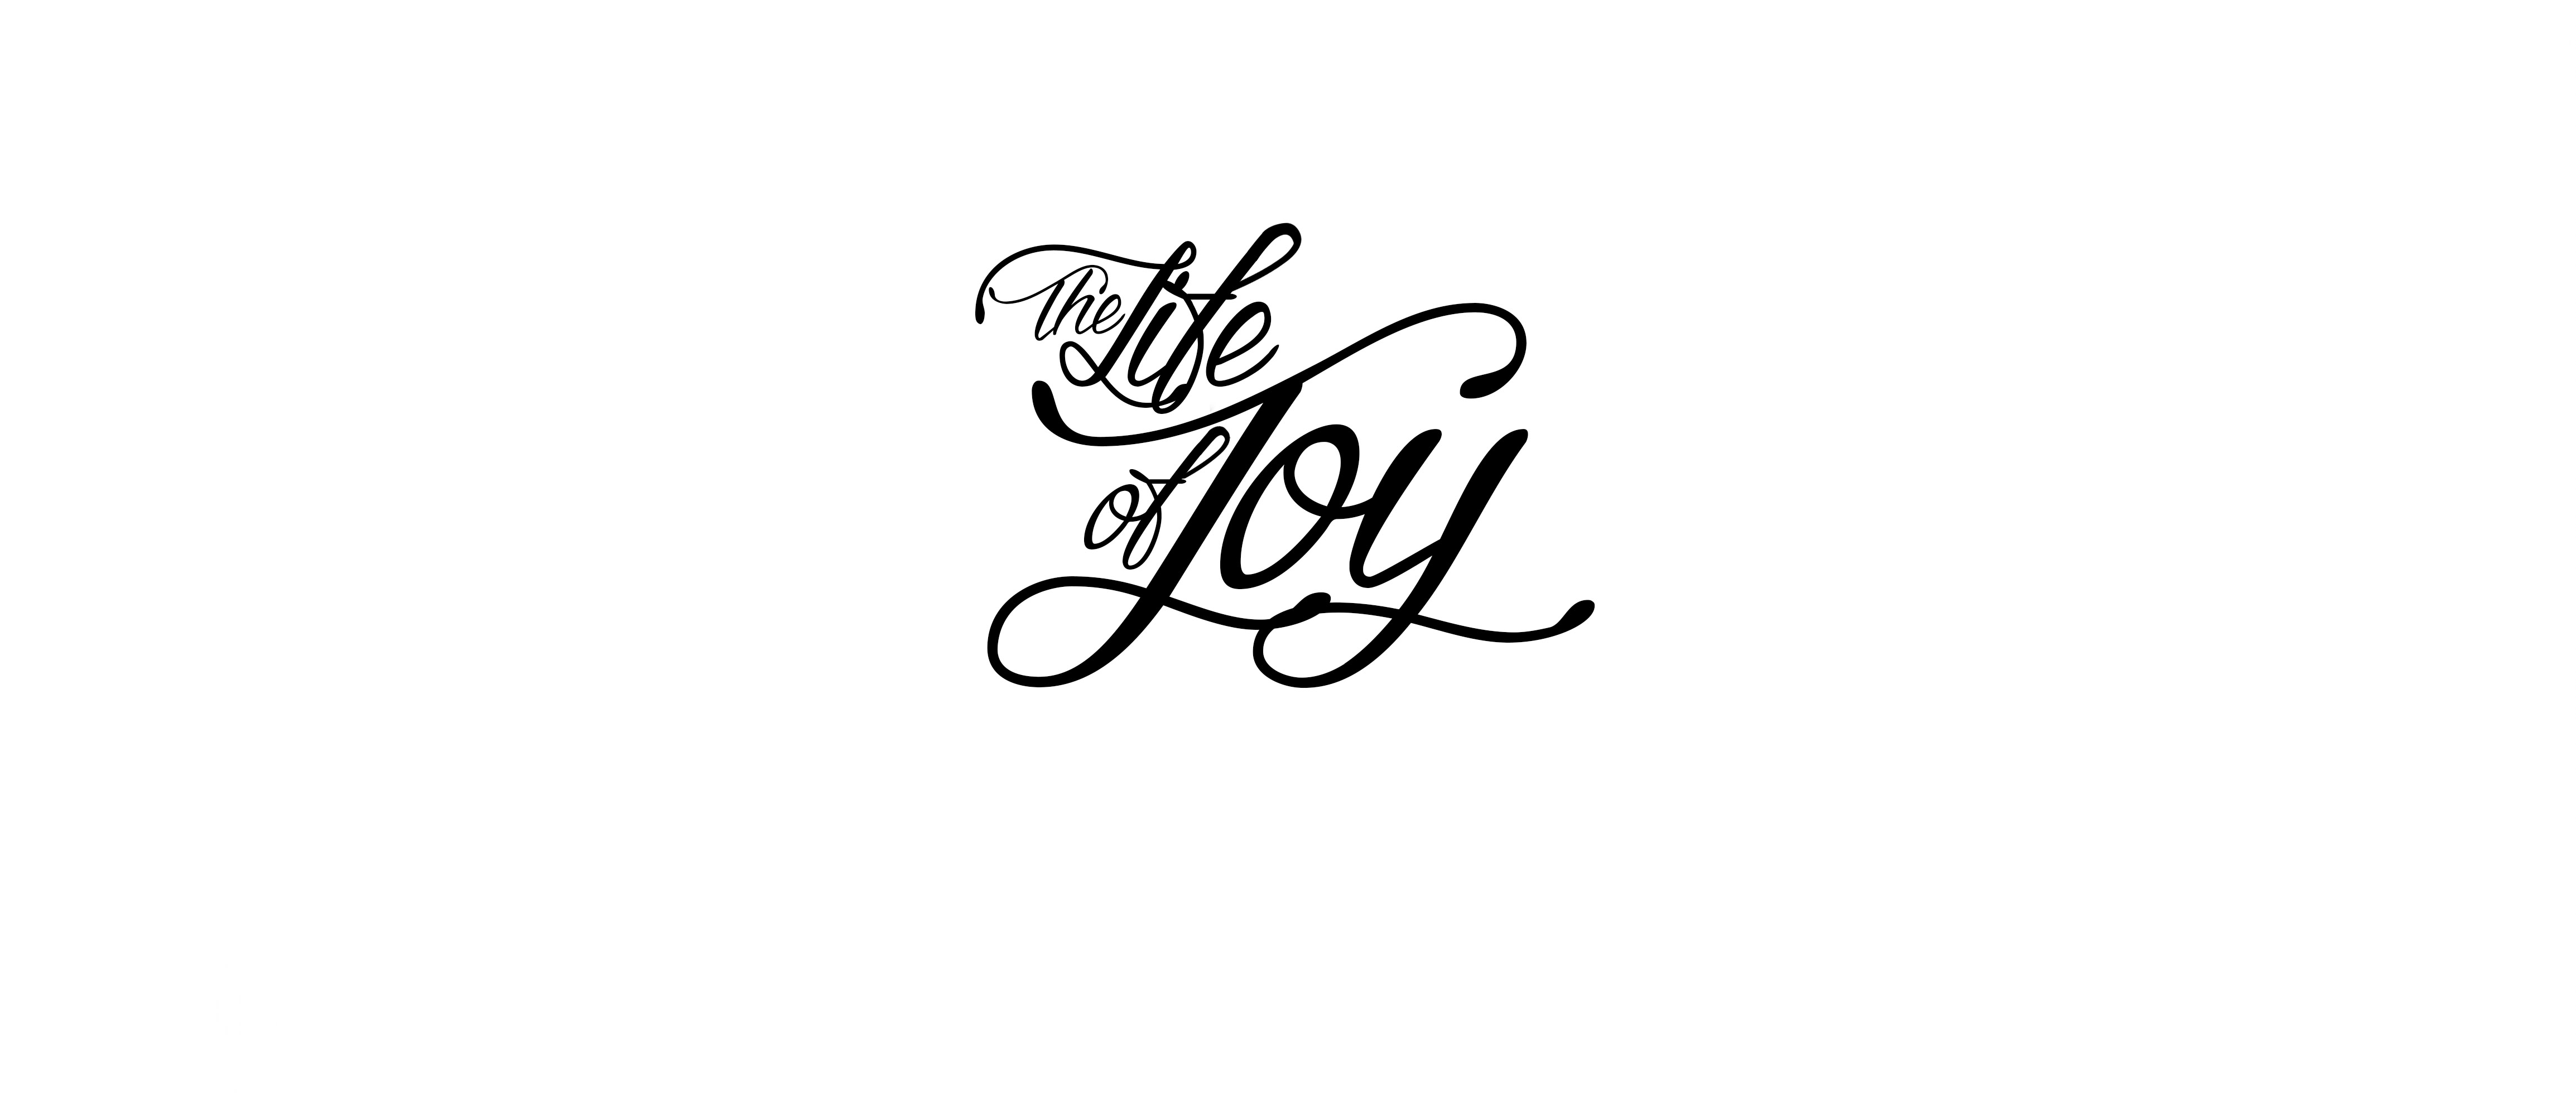 The life of Joy